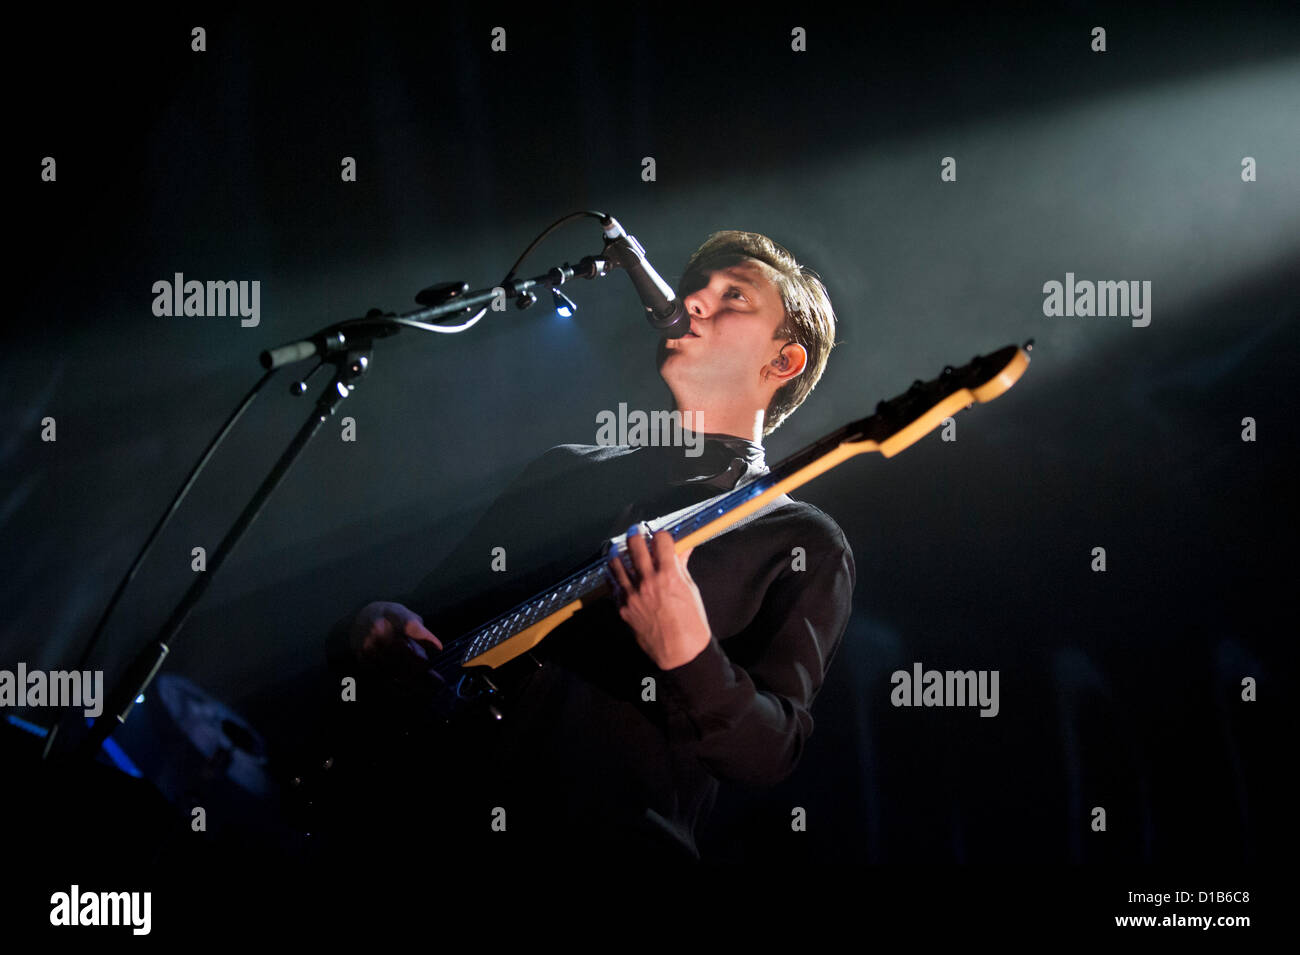 Wolverhampton, UK. 12th December 2012. Singer and bass guitar player Oliver Sim performing with his indie band The - Stock Image